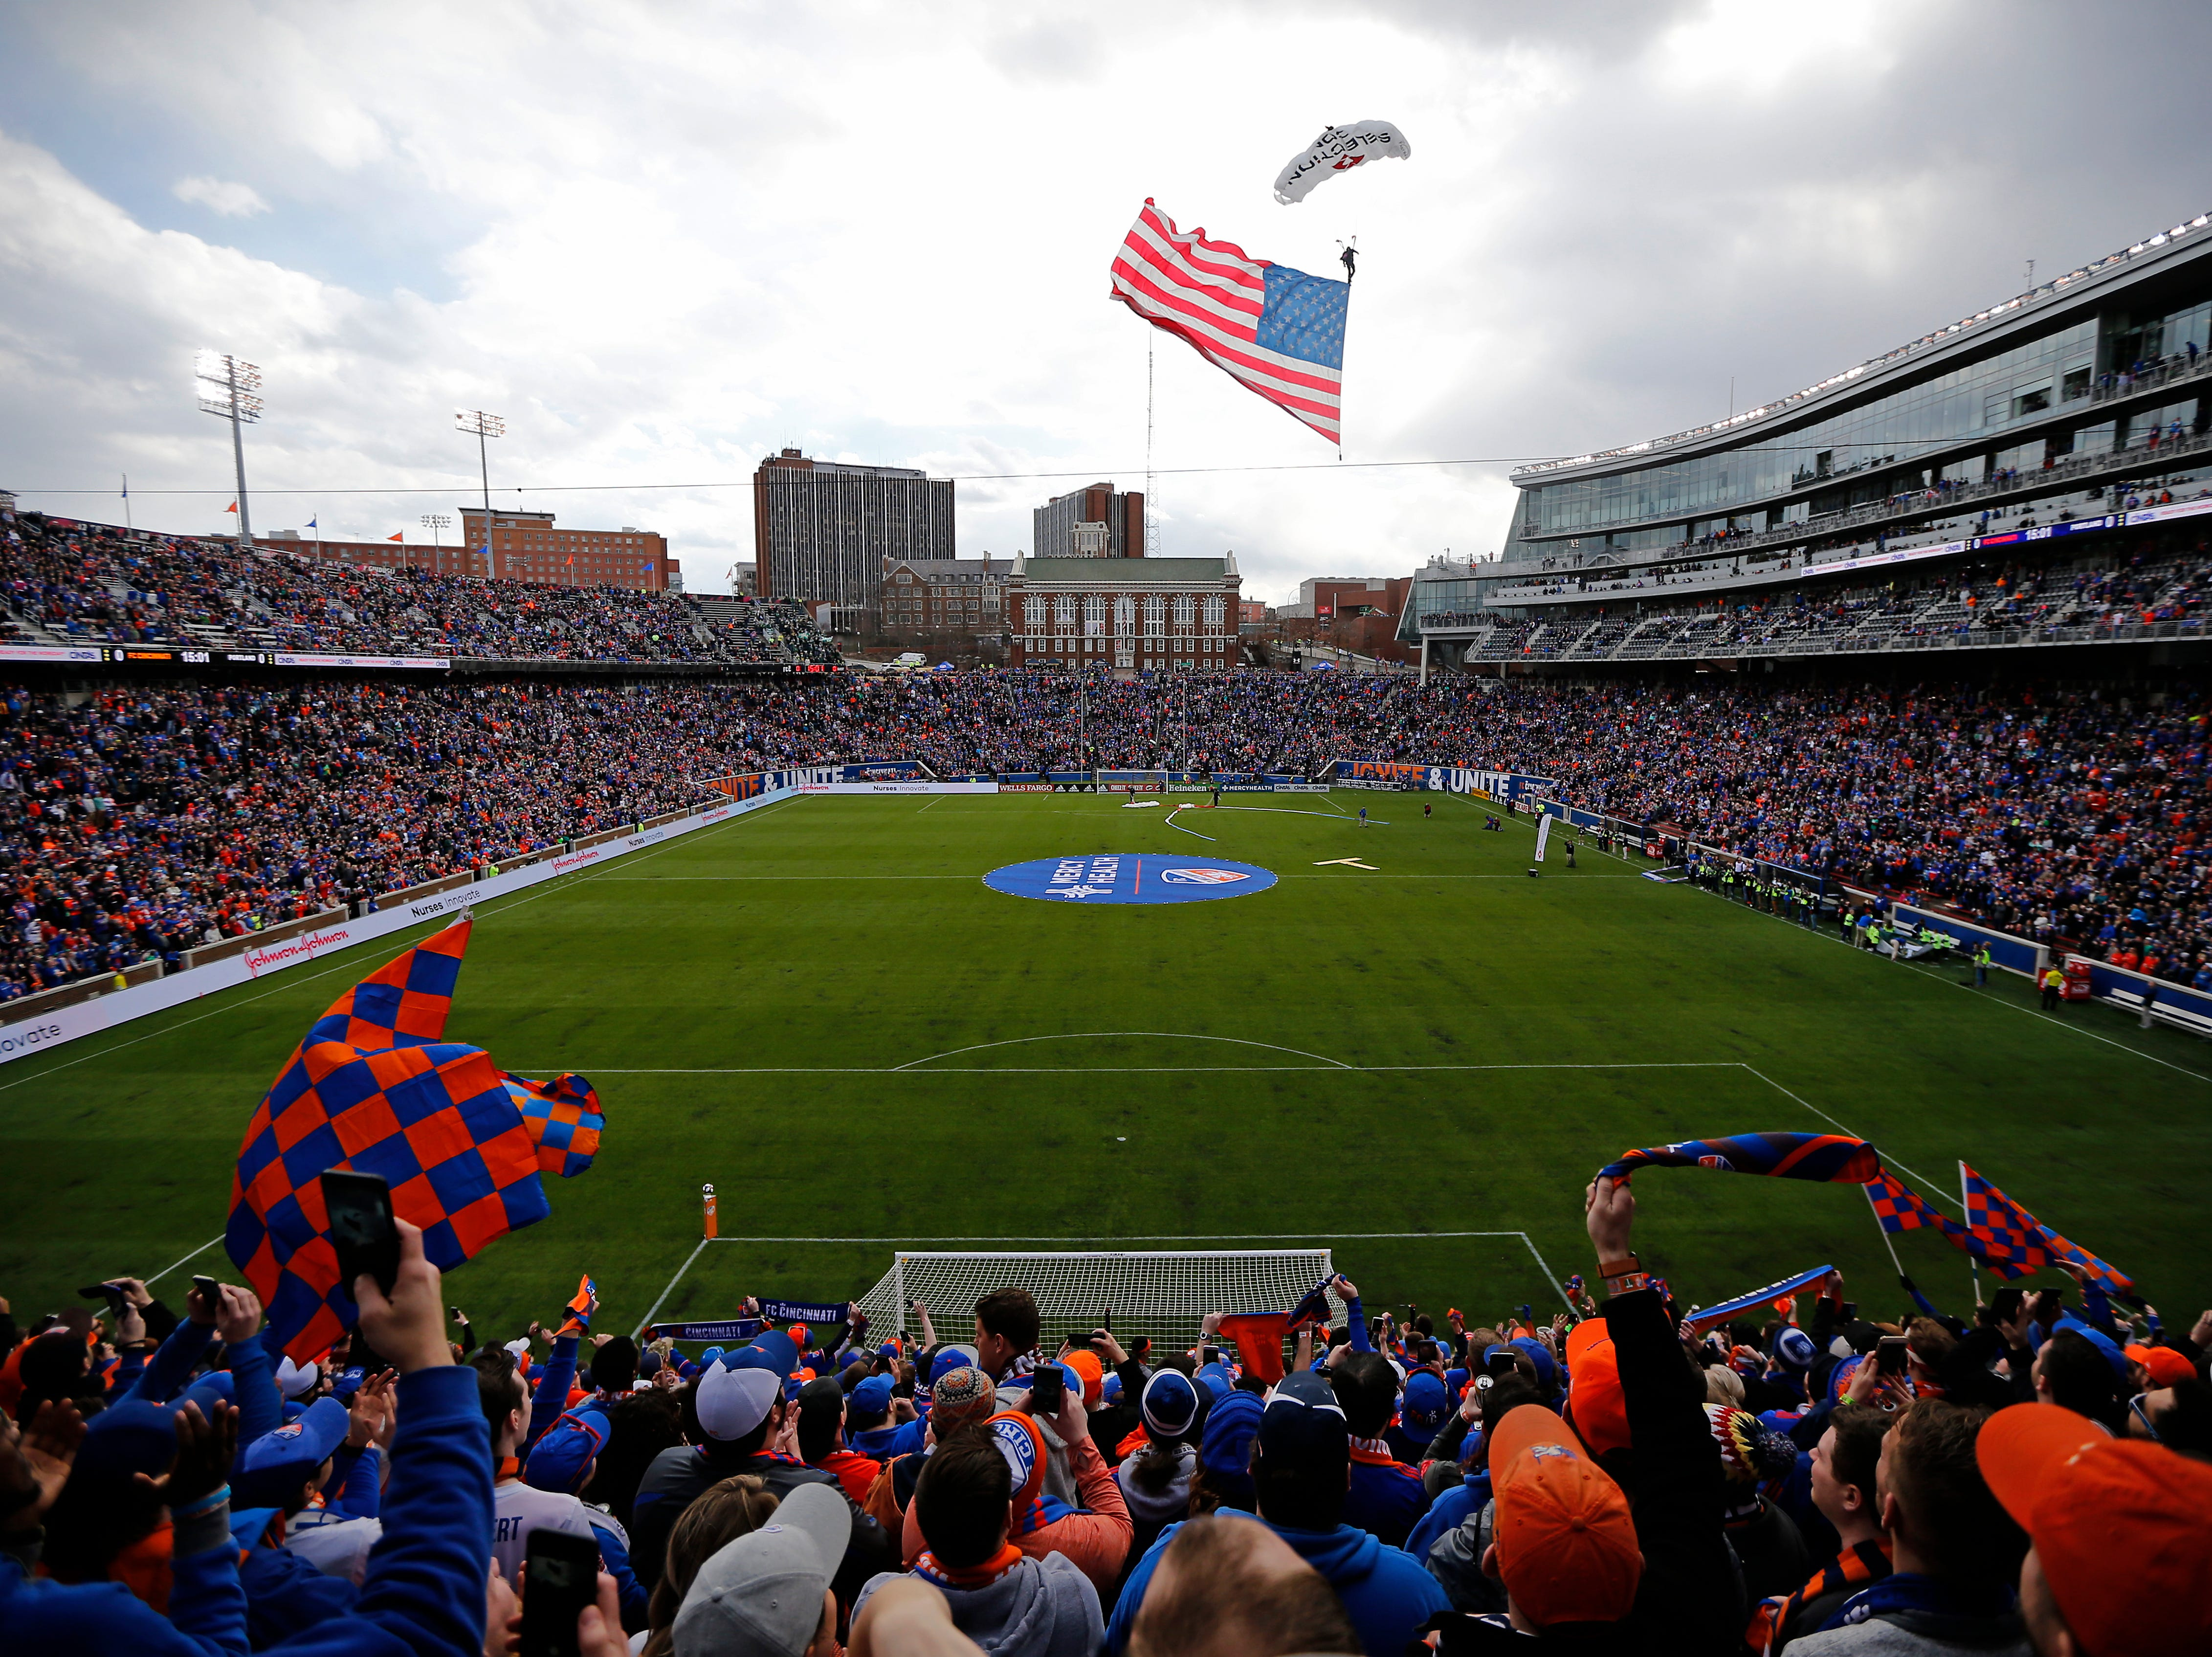 Skydivers deliver the American Flag before the first half of the MLS match between FC Cincinnati and the Portland Timbers at Nippert Stadium in Cincinnati on Sunday, March 17, 2019. FC Cincinnati led 1-0 at halftime.